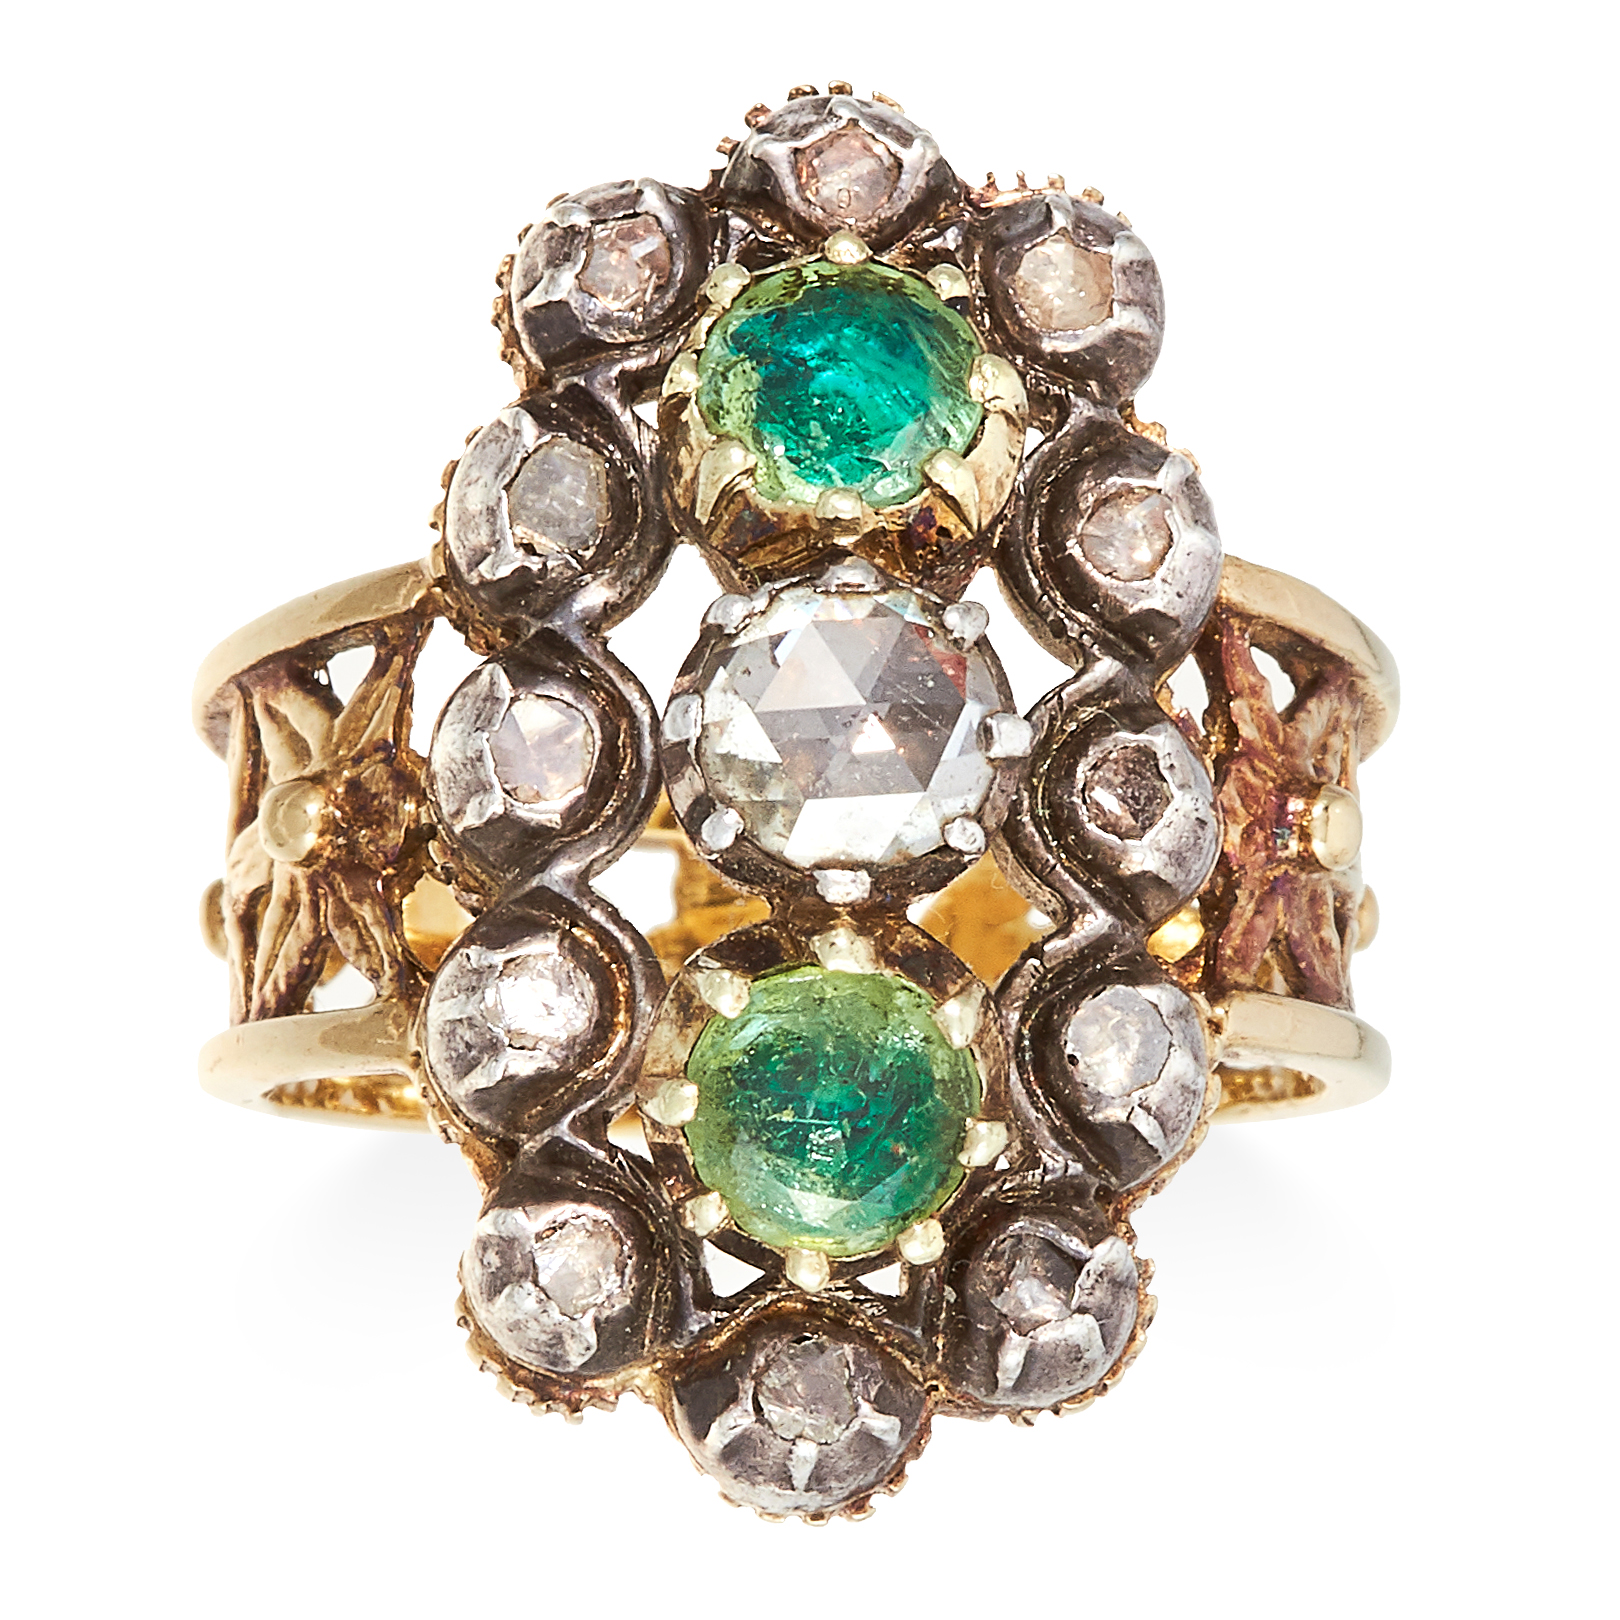 Los 37 - AN ANTIQUE EMERALD AND DIAMOND RING in high carat yellow gold, jewelled with two round cut